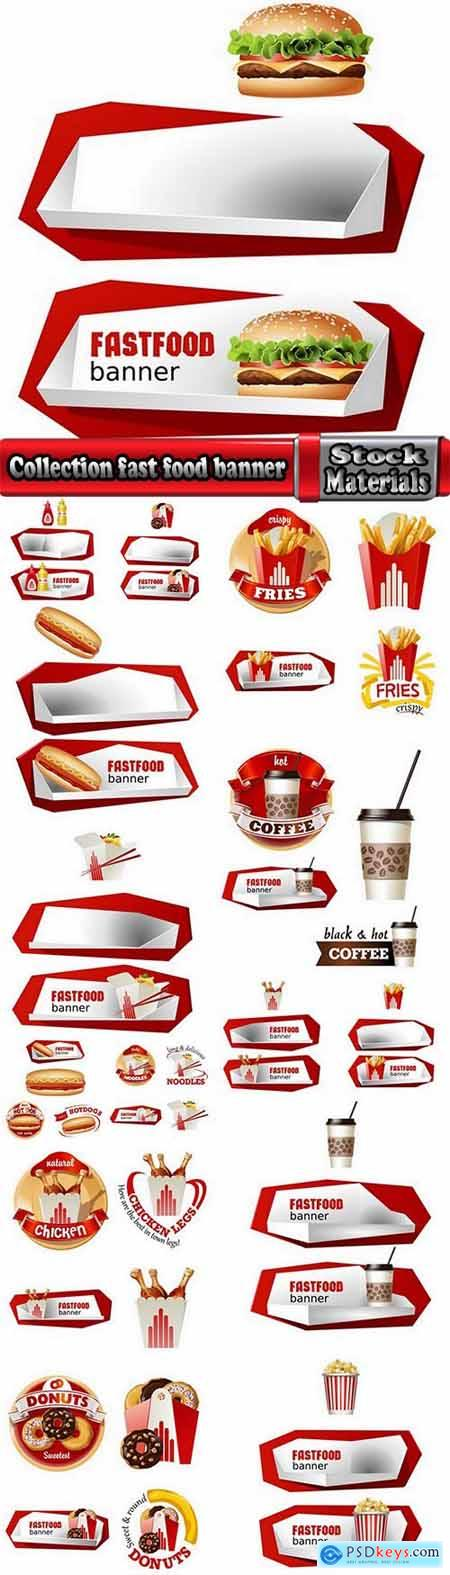 Collection fast food banner pointer plate fried potatoes burger drink 15 EPS